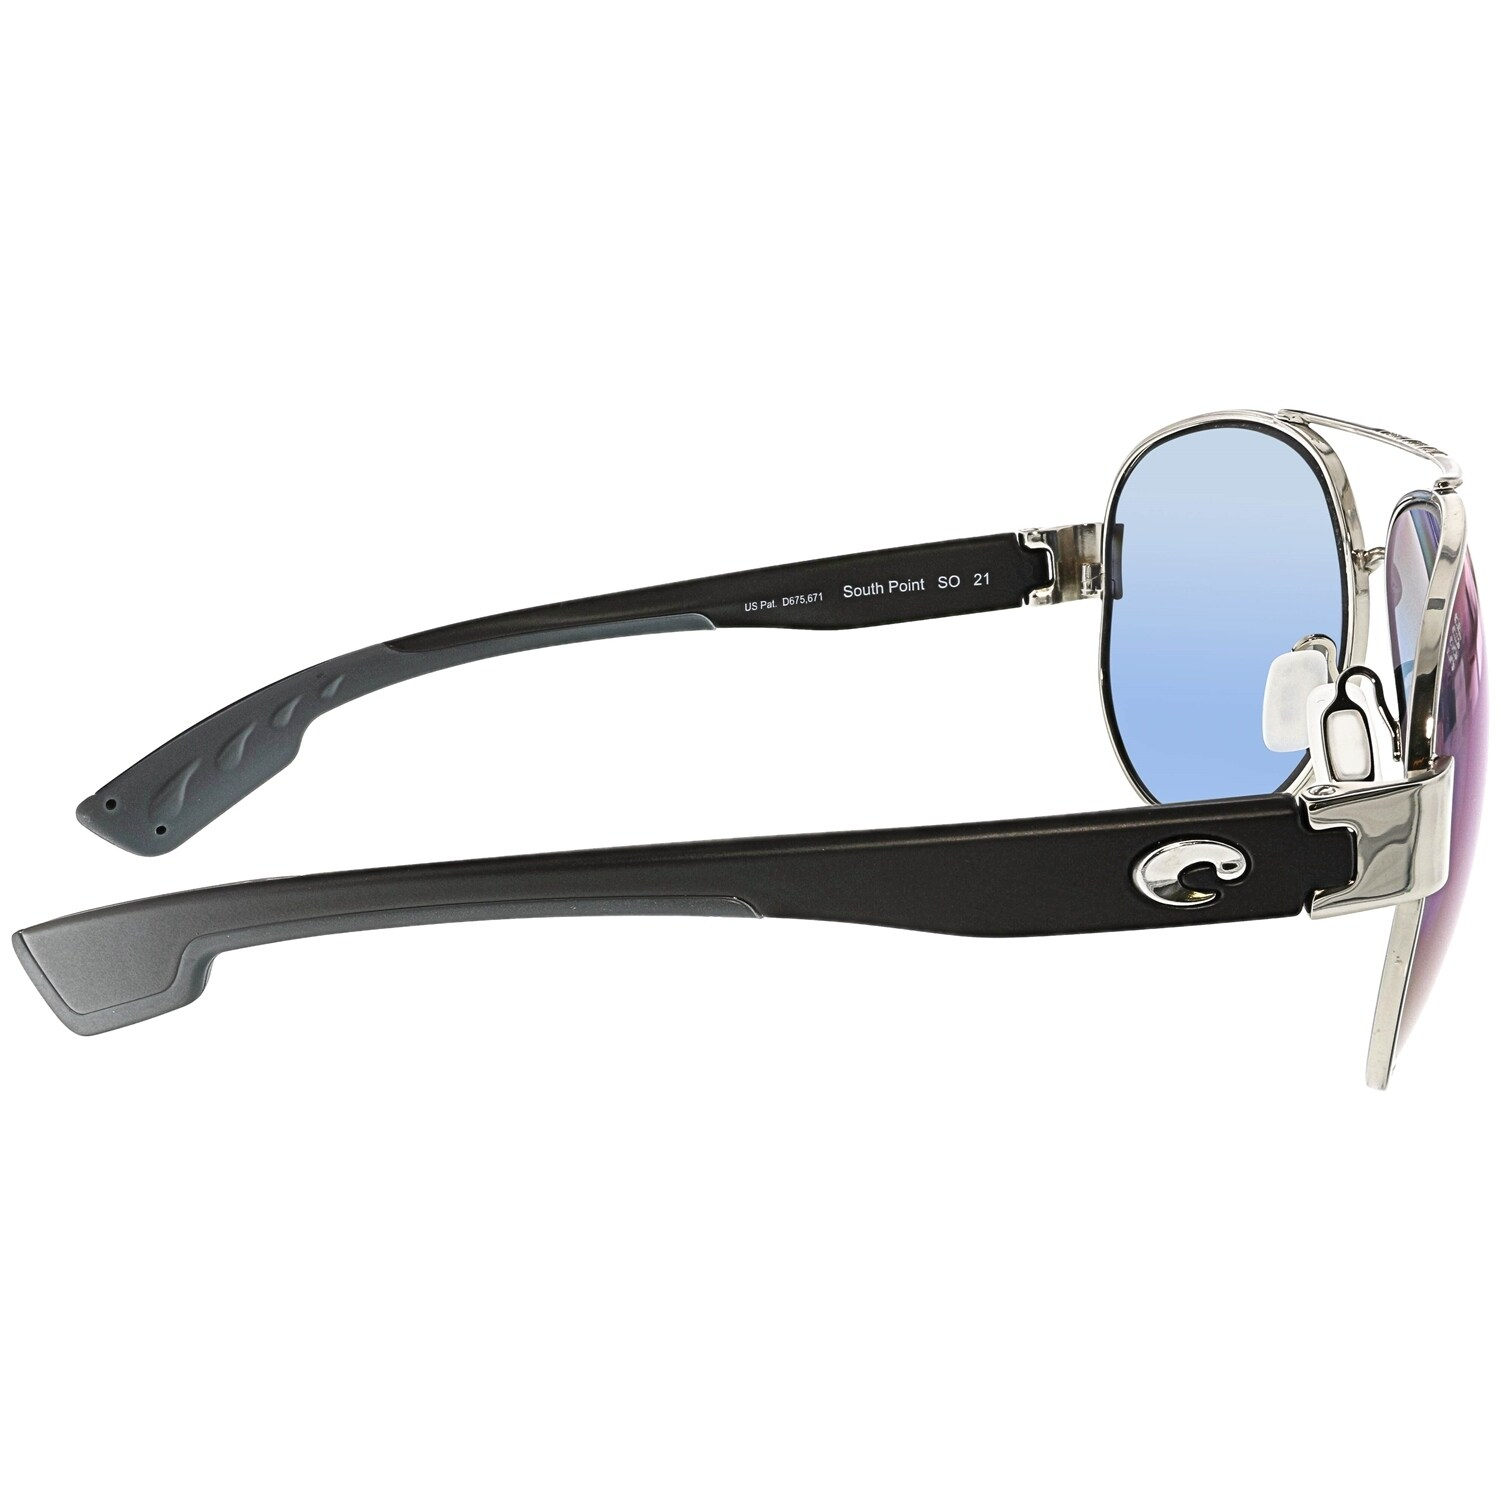 d86f6ccbb Shop Costa Del Mar Mirrored South Point SO21OBMP Black Aviator Sunglasses -  Free Shipping Today - Overstock - 18900277